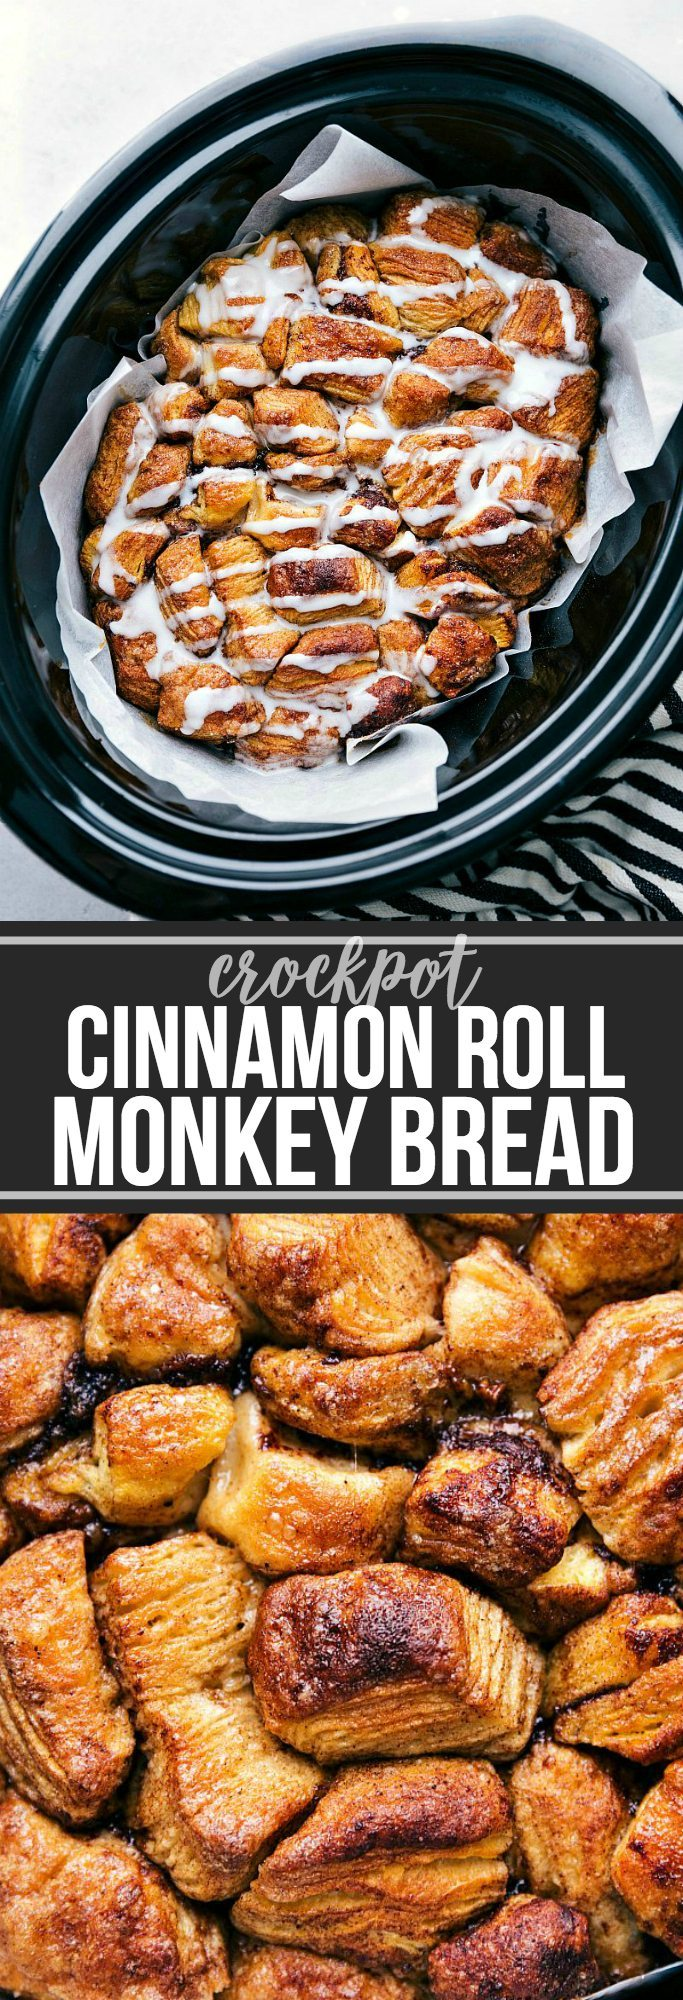 The ultimate BEST EVER Crockpot Monkey Bread! SO many flavors and not overly sweet!! Plus it's made super simple in the crockpot! via chelseasmessyapron.com | #crockpot #slowcooker #monkeybread #dessert #breakfast #holidays #easy #quick #cinnamon #roll